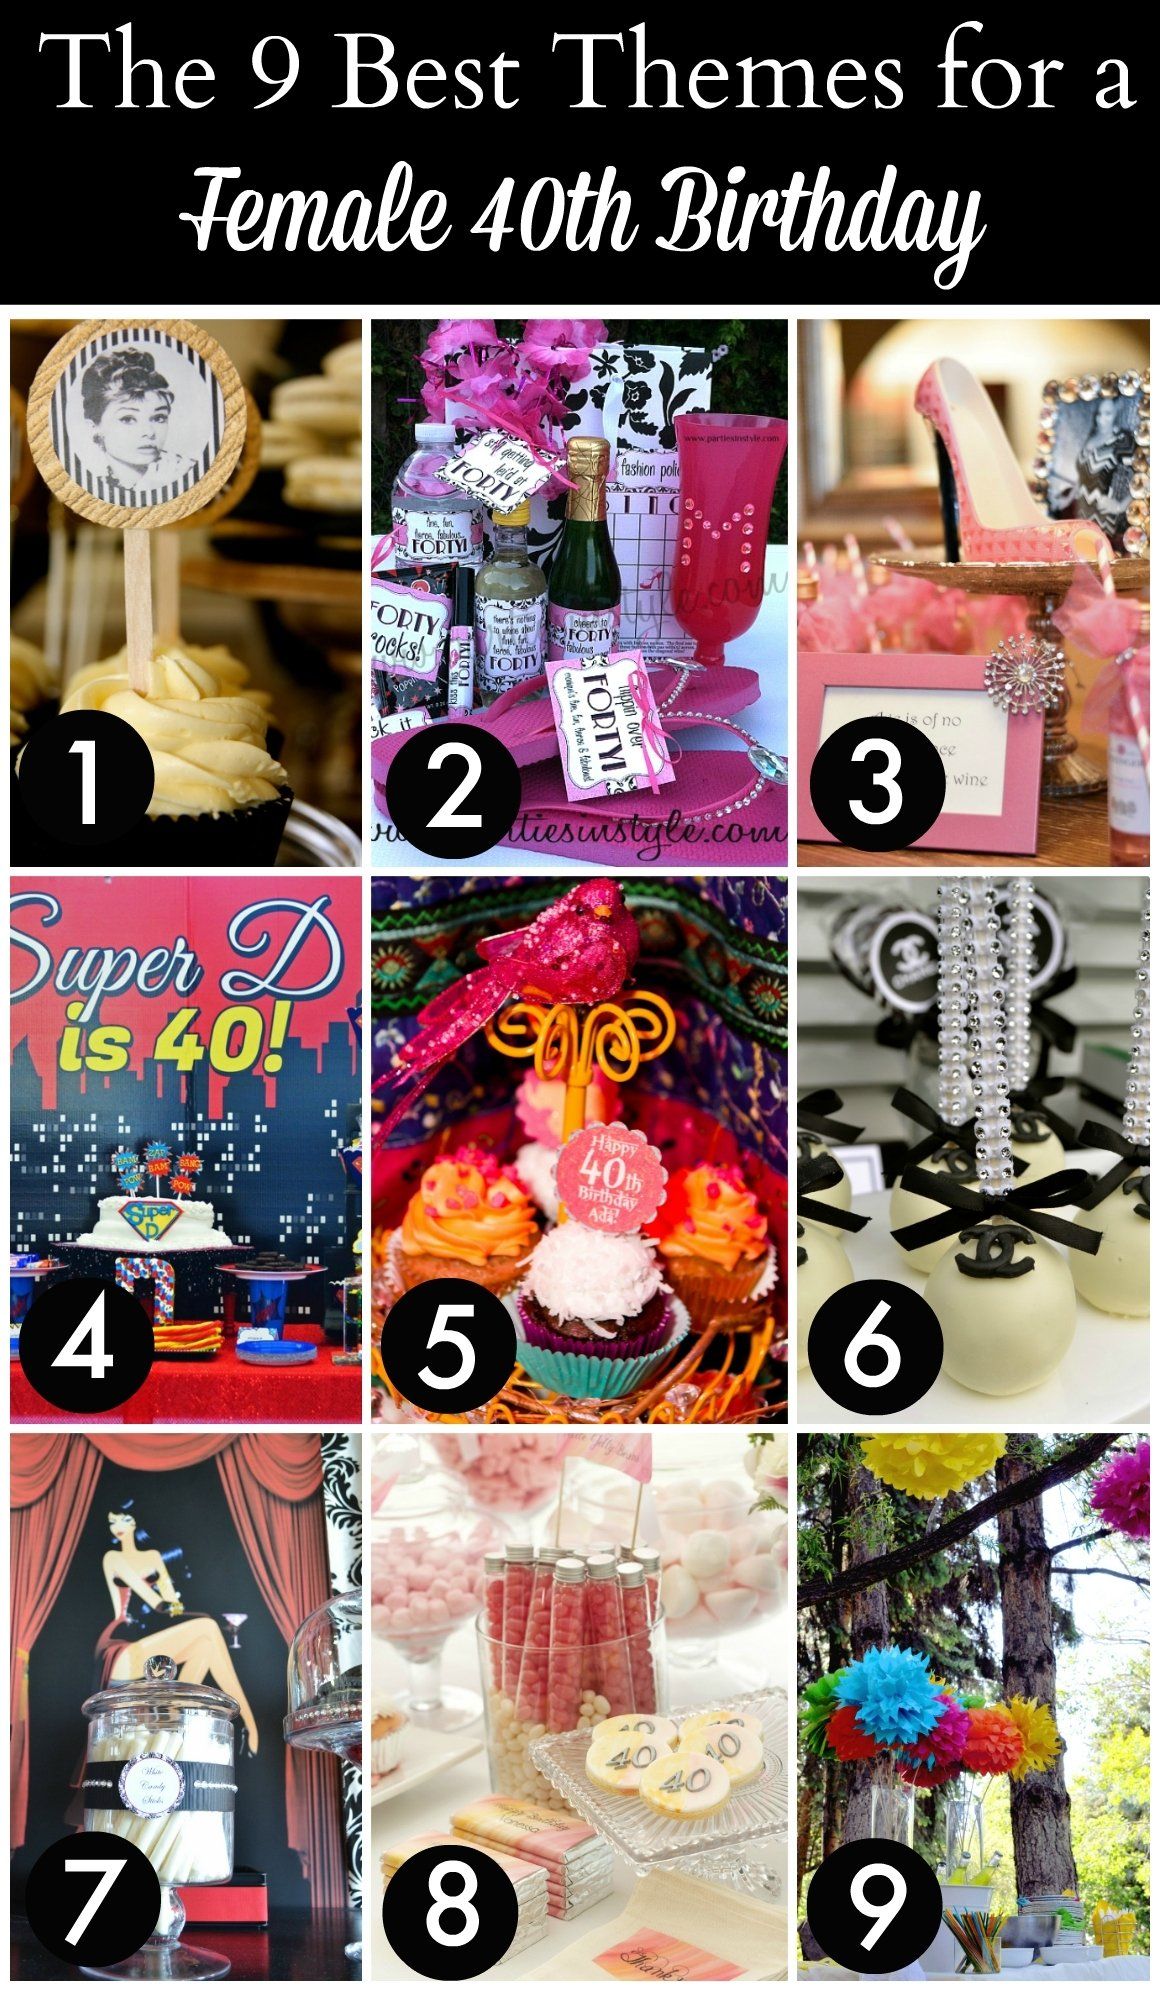 10 Unique 40Th Birthday Ideas For Women the 12 best 40th birthday themes for women catch my party 2 2021